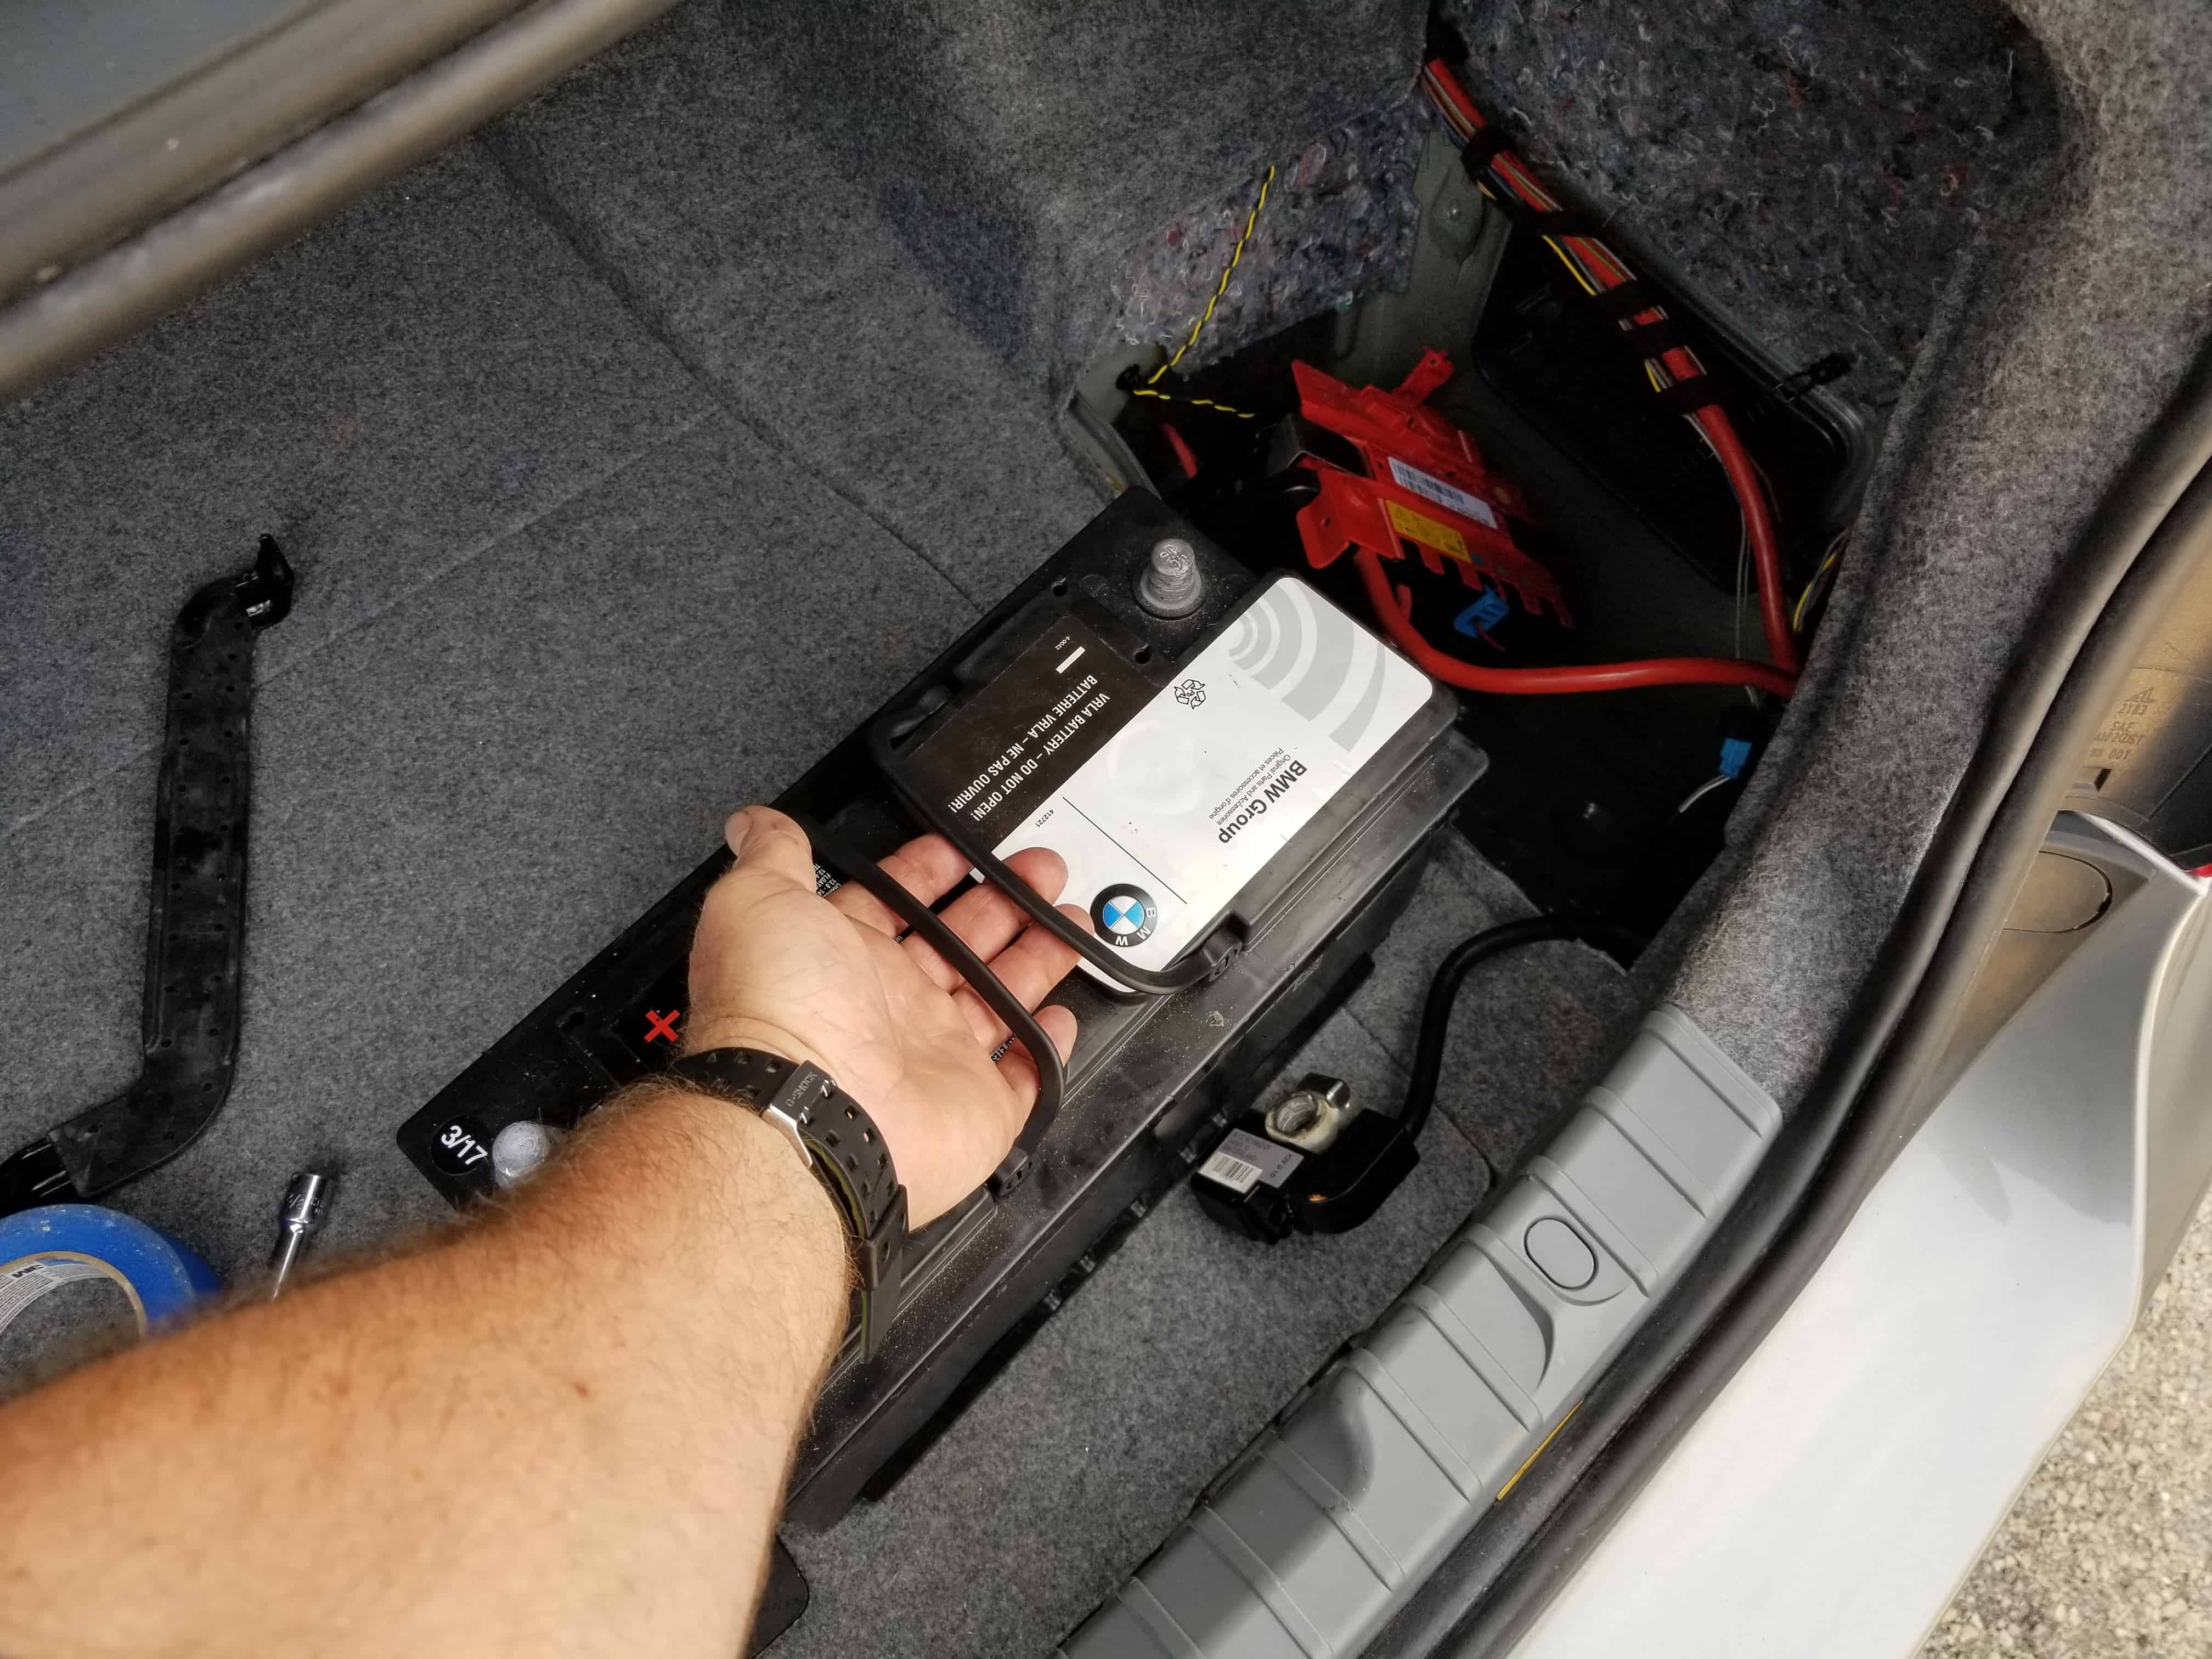 BMW E90 Battery Replacement - 2007-2013 3 Series - All ModelsBMW Repair Guide